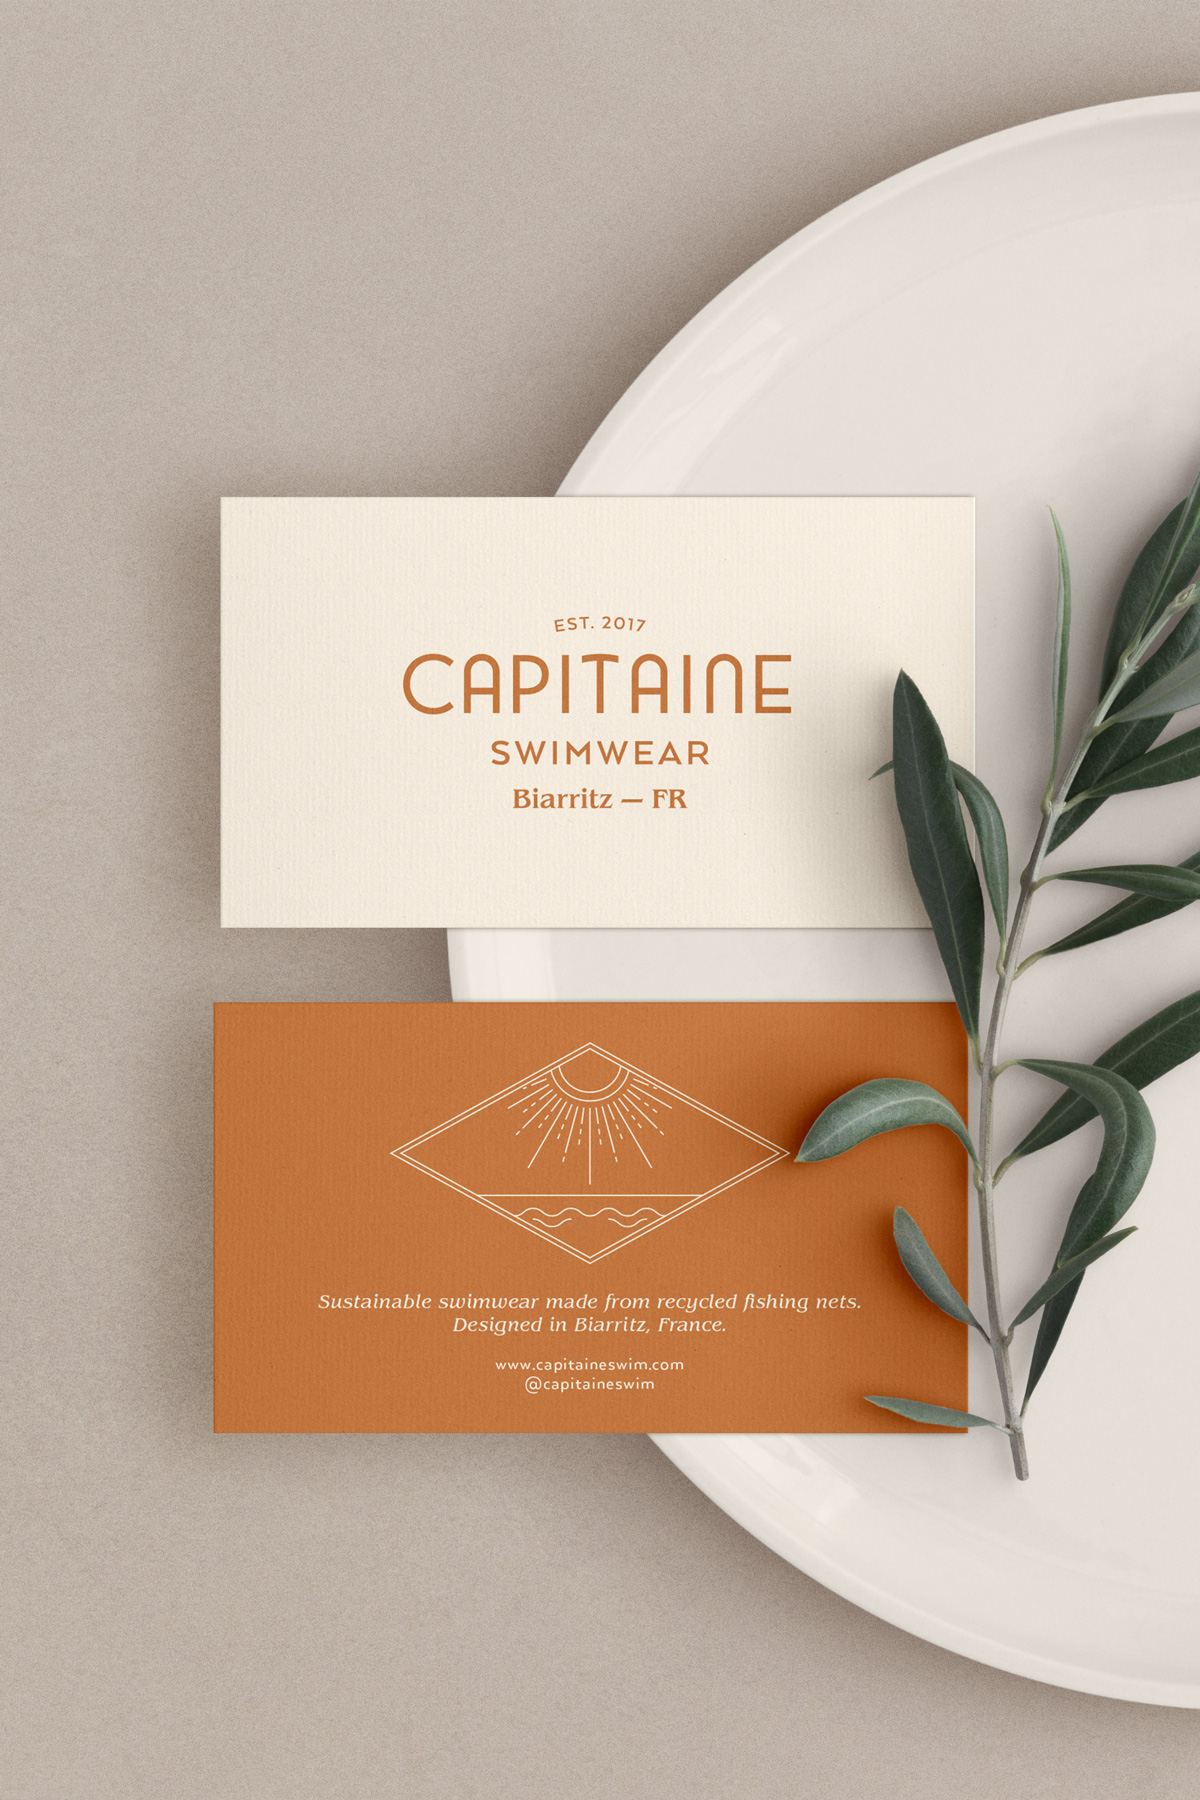 Business card design for sustainable swimwear brand. Logo and branding for sustainable and ethical clothing - swimwear, beachwear and surfwear. Éternel Design Studio, timeless brand design with purpose and strategy.